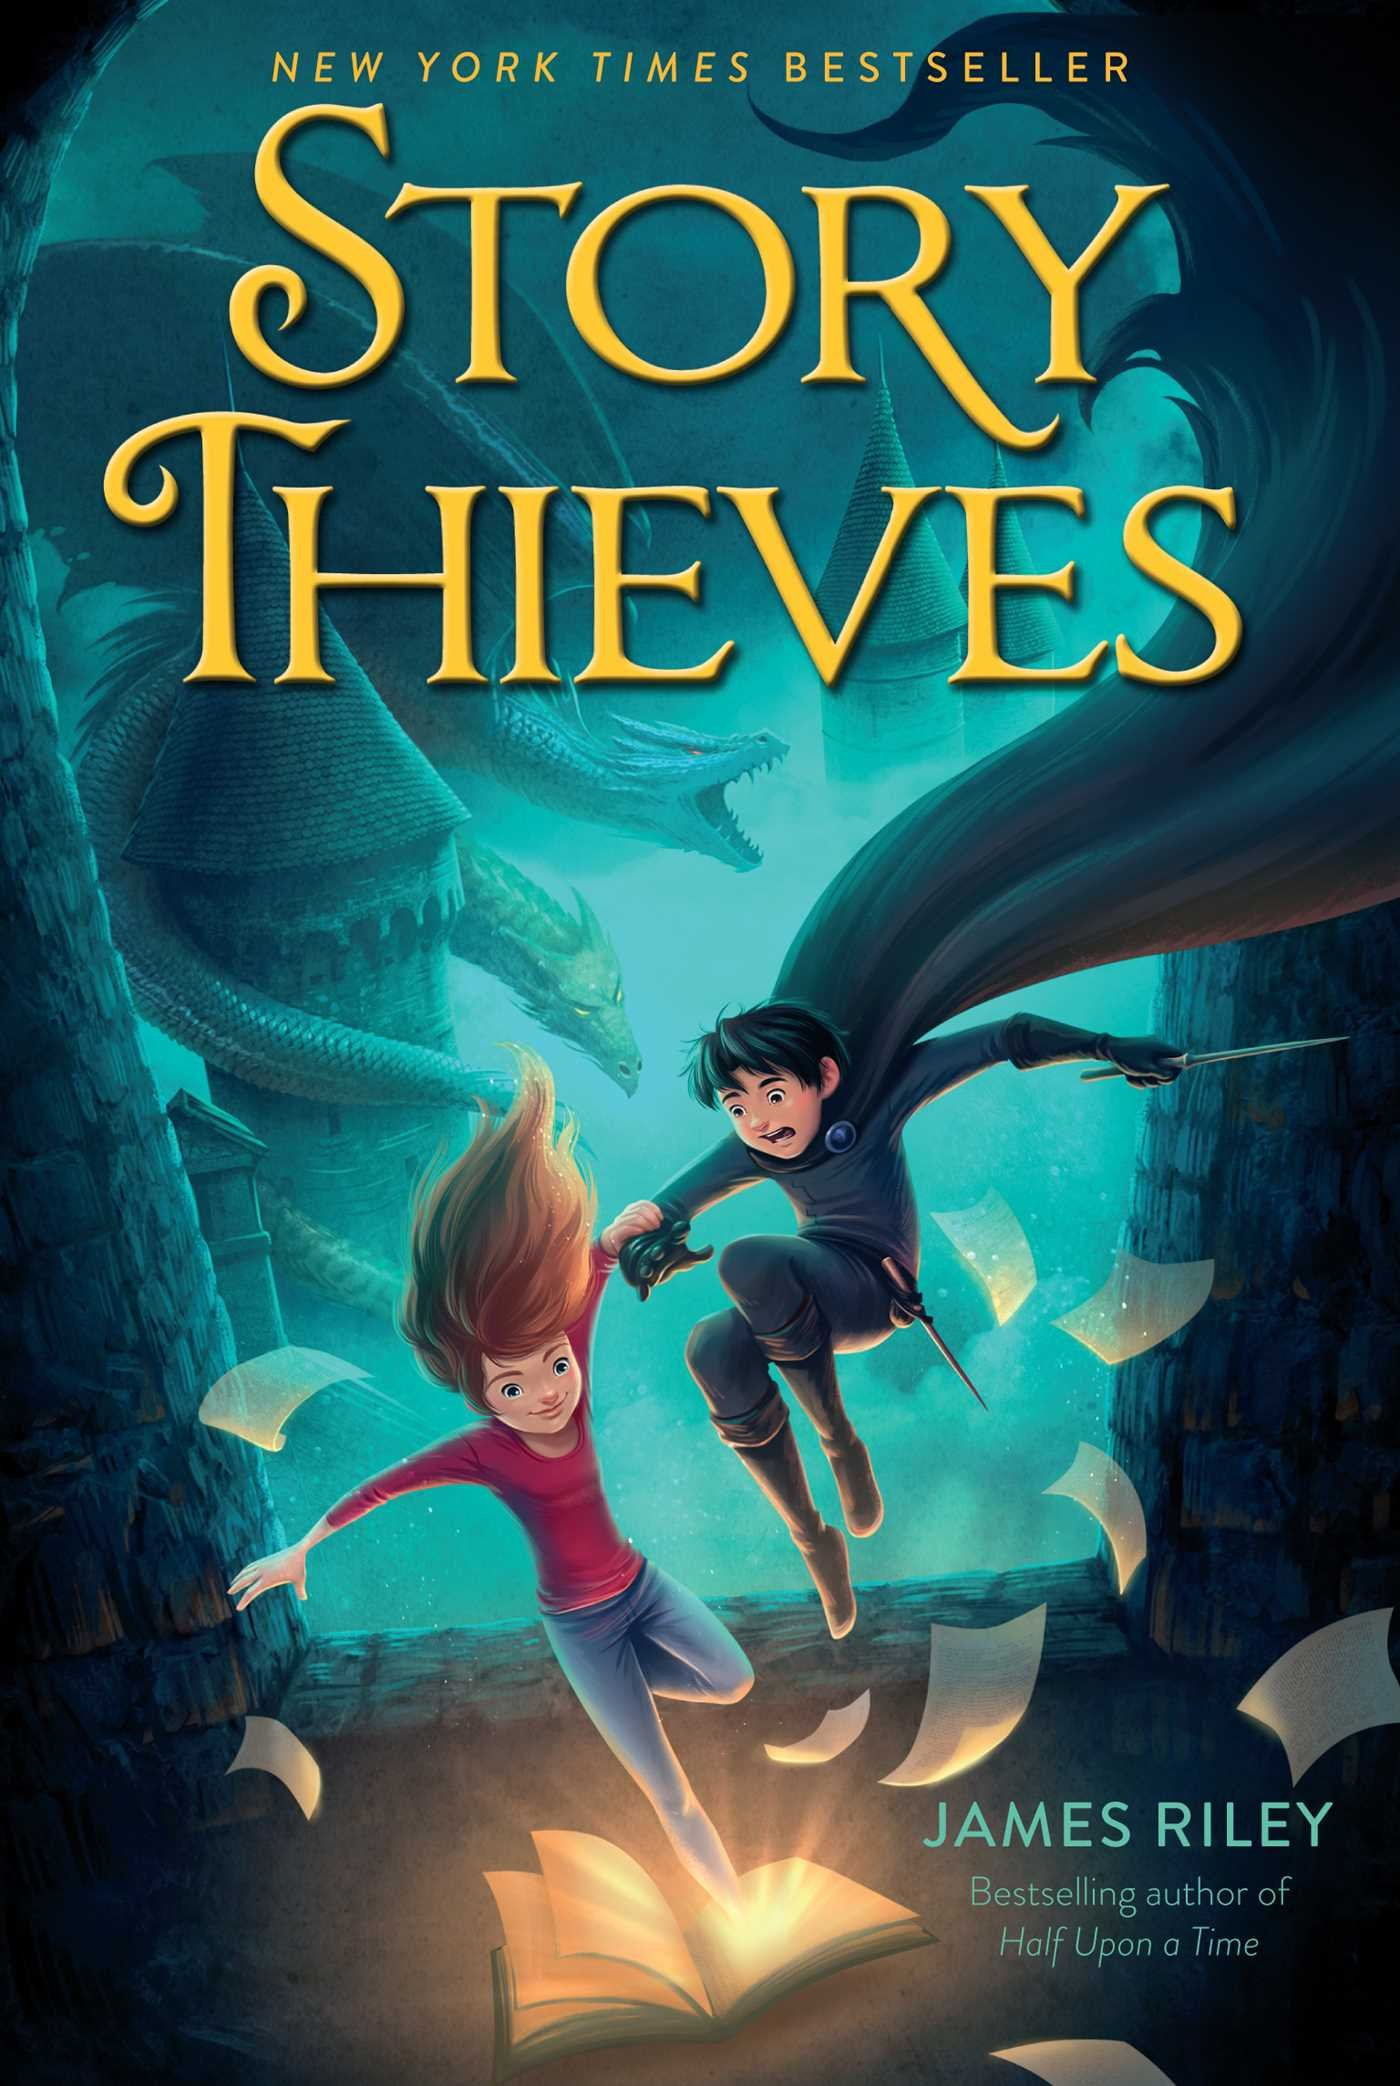 STORY THIEVES (BOOK 1) - Life is boring when you live in the real world, instead of starring in your own book series. Owen knows that better than anyone, what with the real world's homework and chores.But everything changes the day Owen sees the impossible happen—his classmate Bethany climb out of a book in the library. It turns out Bethany's half-fictional and has been searching every book she can find for her missing father, a fictional character.Bethany can't let anyone else learn her secret, so Owen makes her a deal: All she has to do is take him into a book in Owen's favorite Kiel Gnomenfoot series, and he'll never say a word. Besides, visiting the book might help Bethany find her father……Or it might just destroy the Kiel Gnomenfoot series, reveal Bethany's secret to the entire world, and force Owen to live out Kiel Gnomenfoot's final (very final) adventure.BUY: AMAZON | BARNES & NOBLE | INDEPENDENT STORES